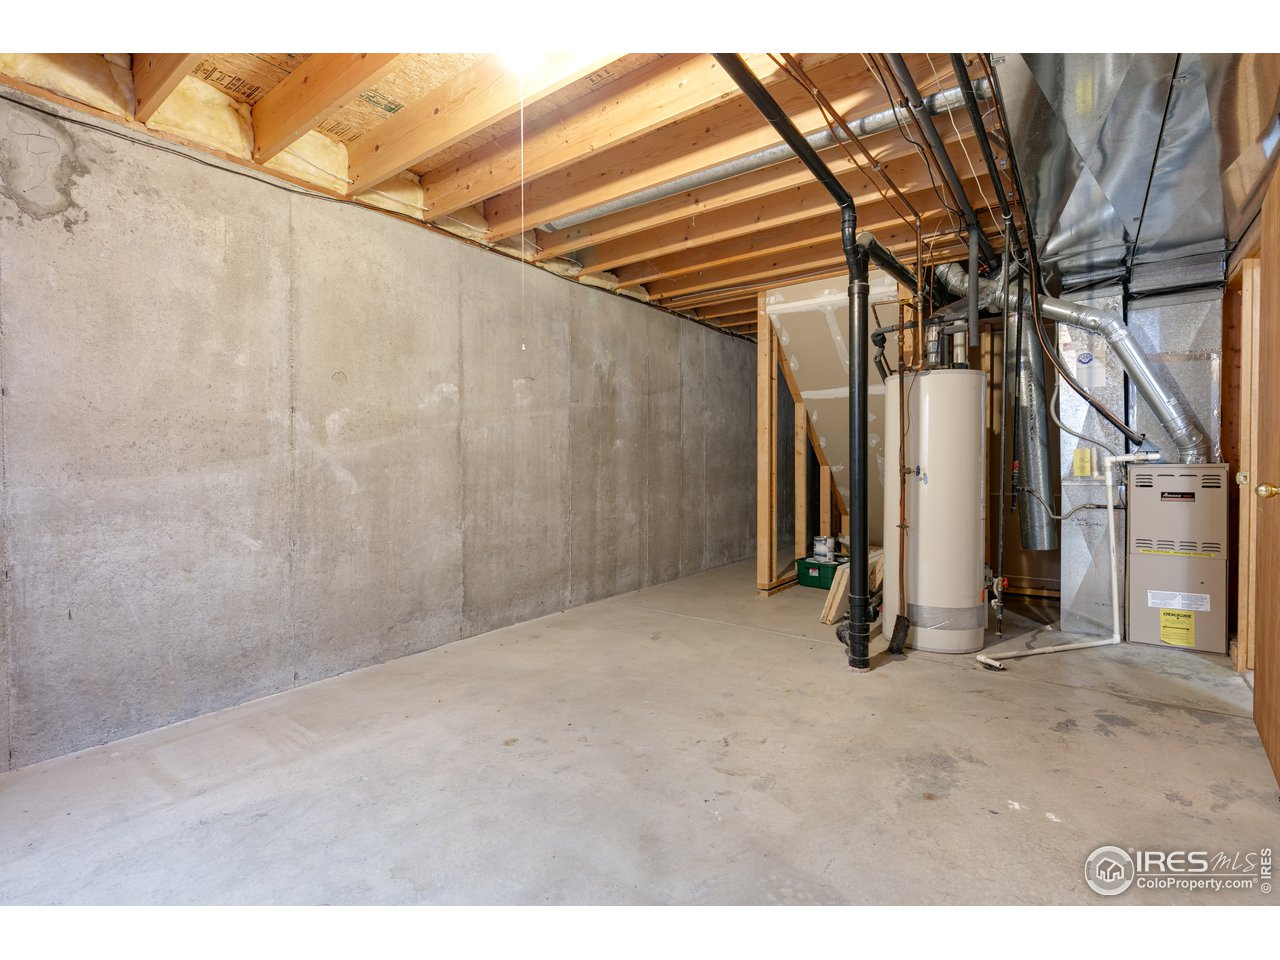 unfinished service space in basement